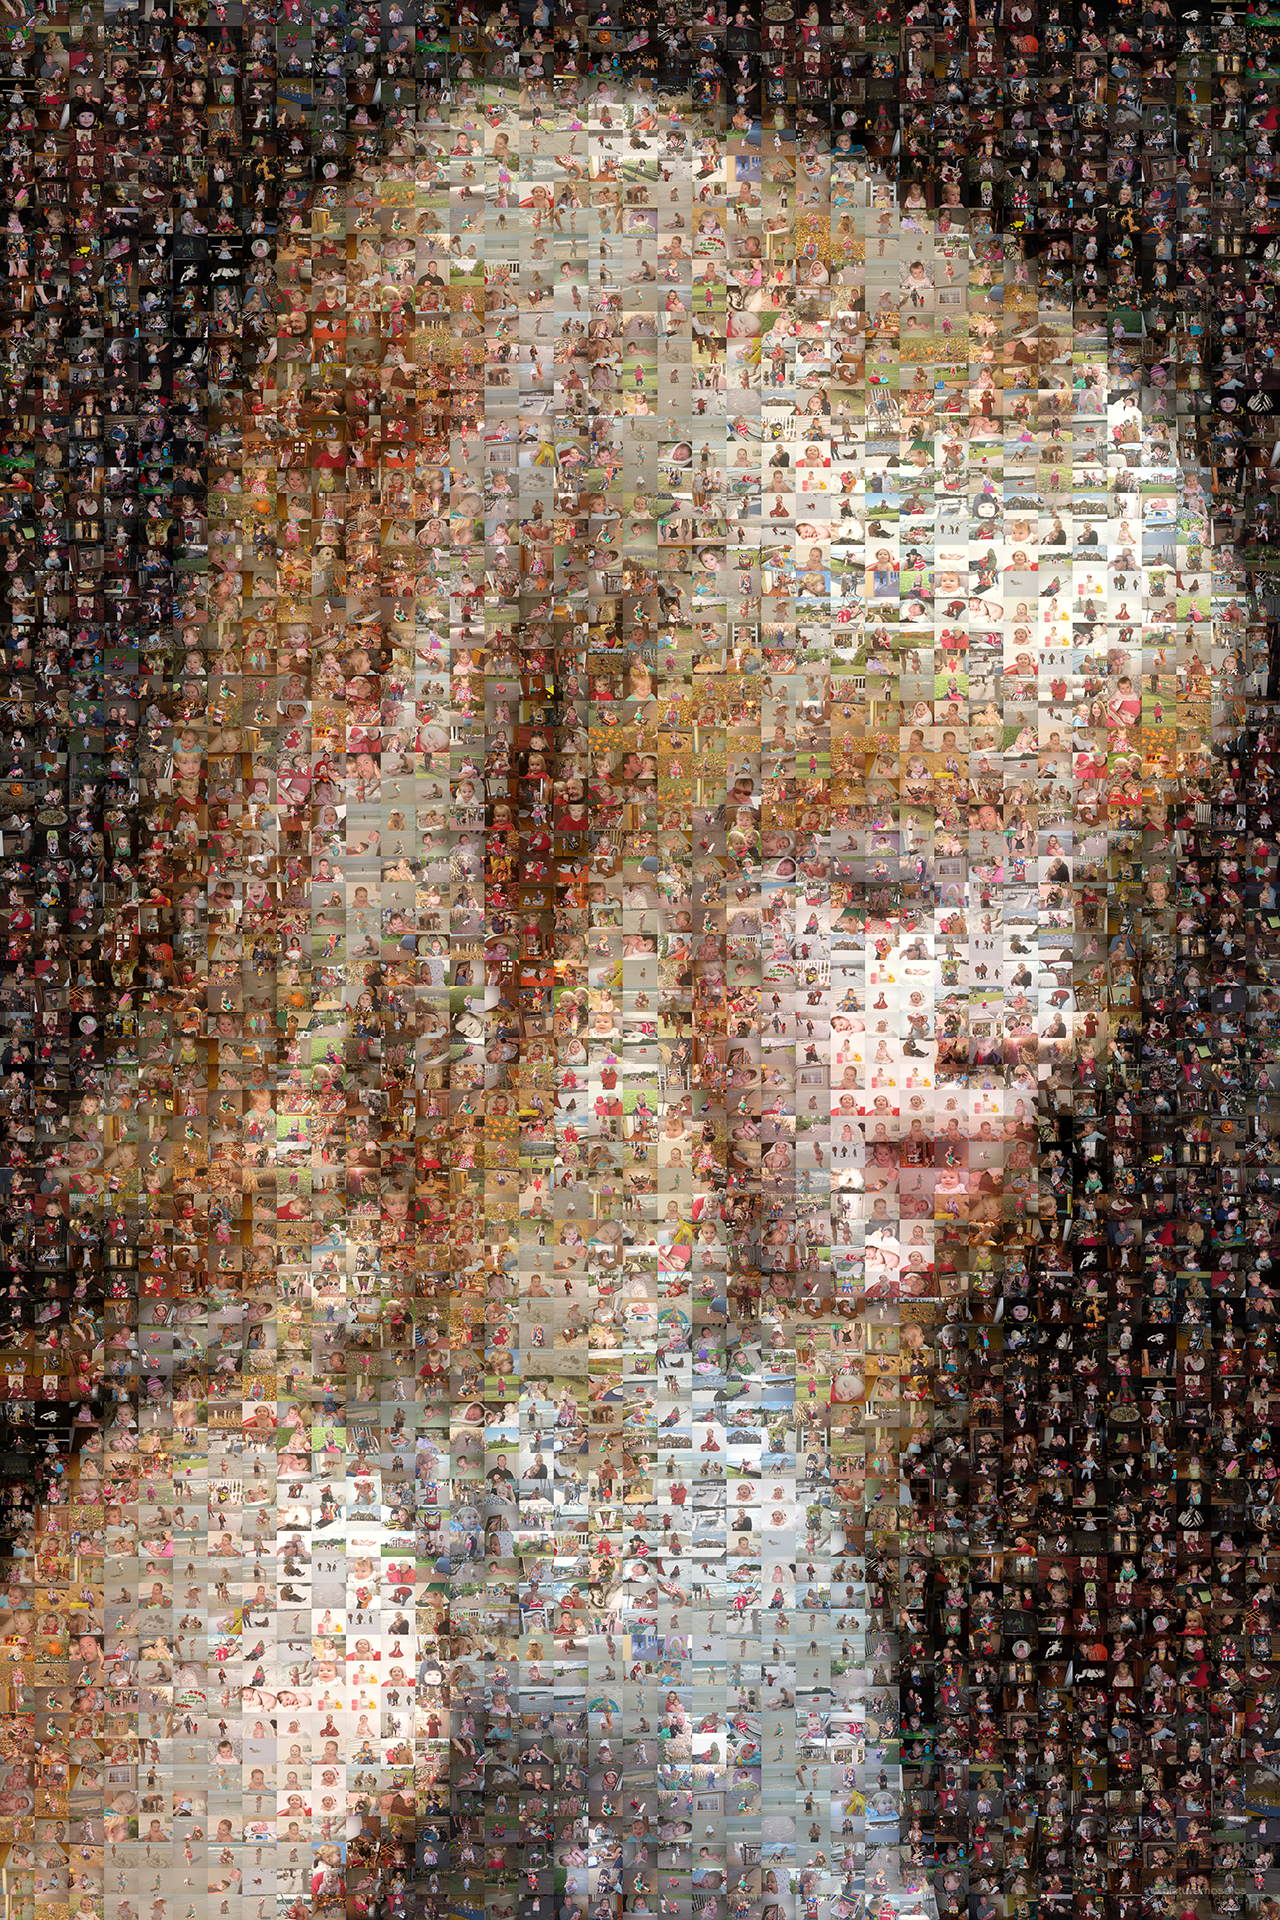 photo mosaic created using over 2,400 family photos